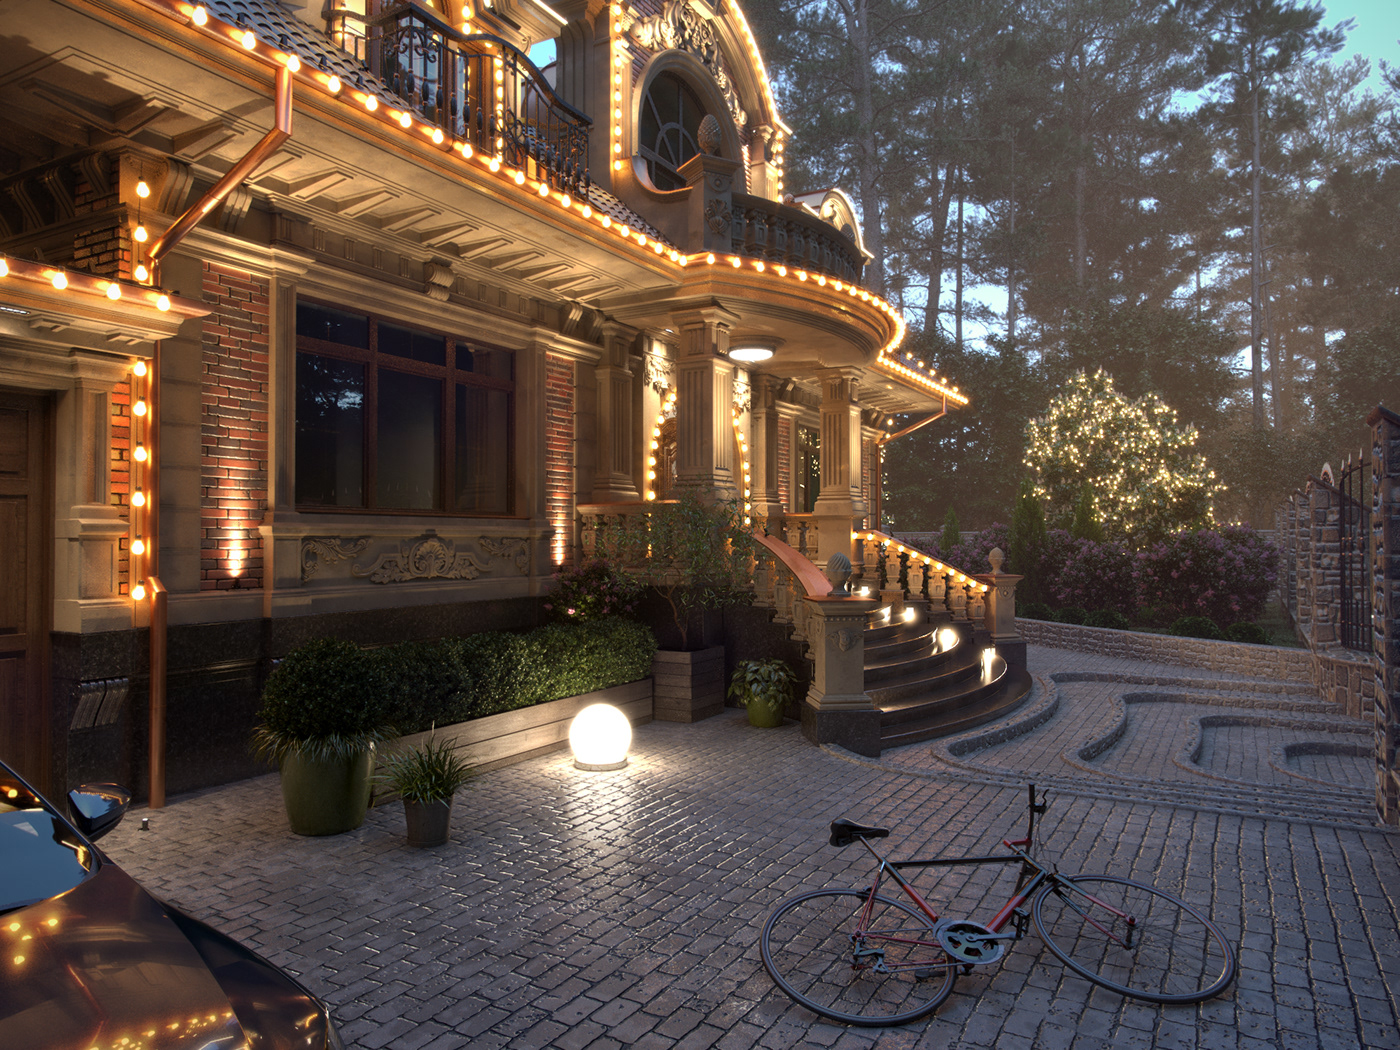 Image may contain: outdoor, bicycle and house